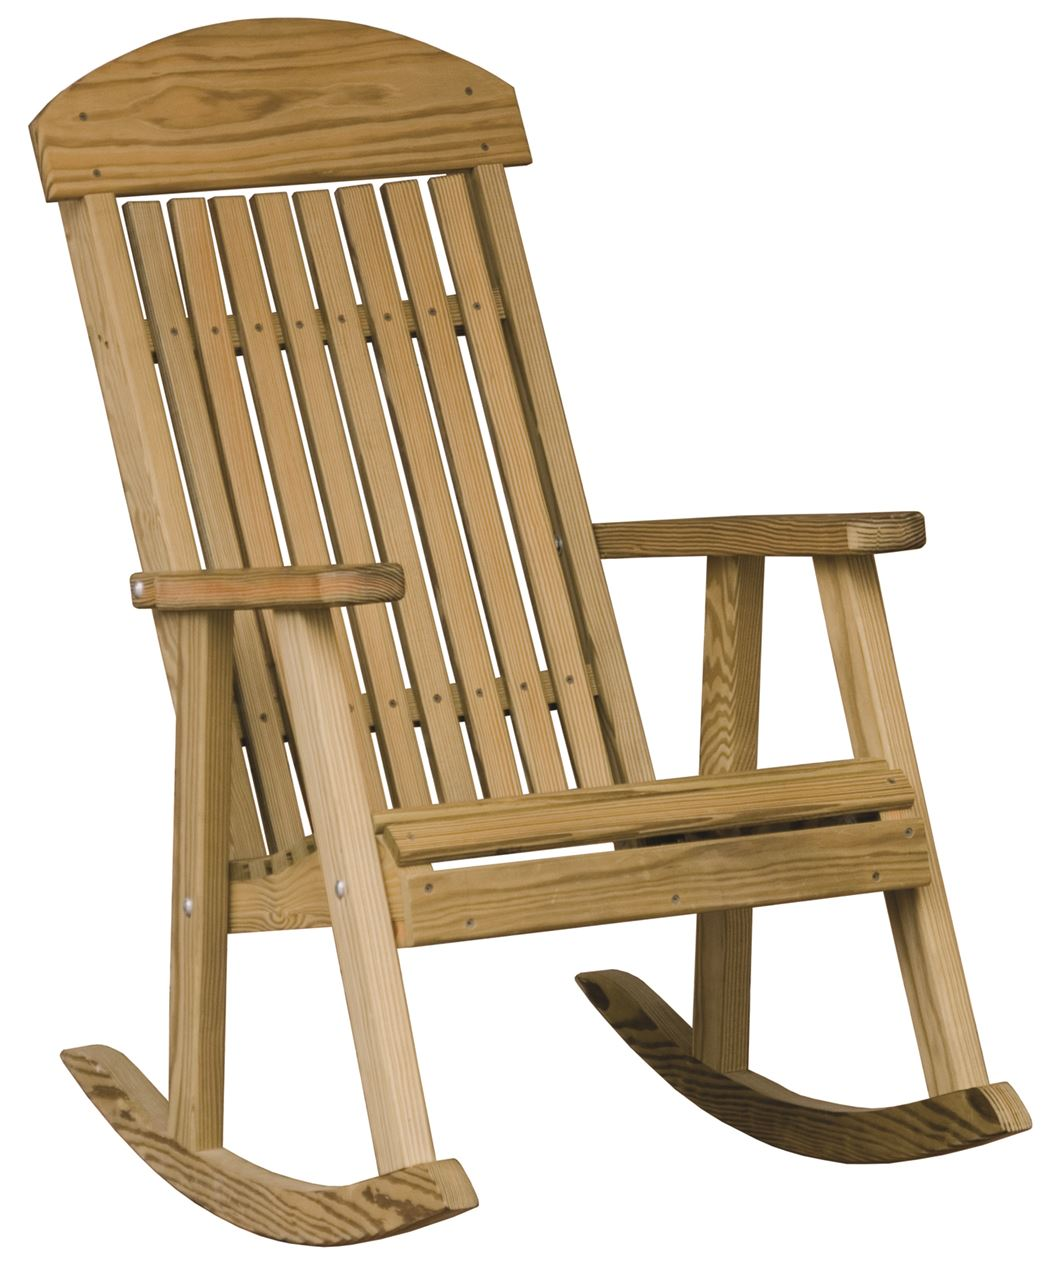 Outdoor Wooden Rocking Chairs Luxcraft Wood Porch Rocker Four Seasons Furnishings